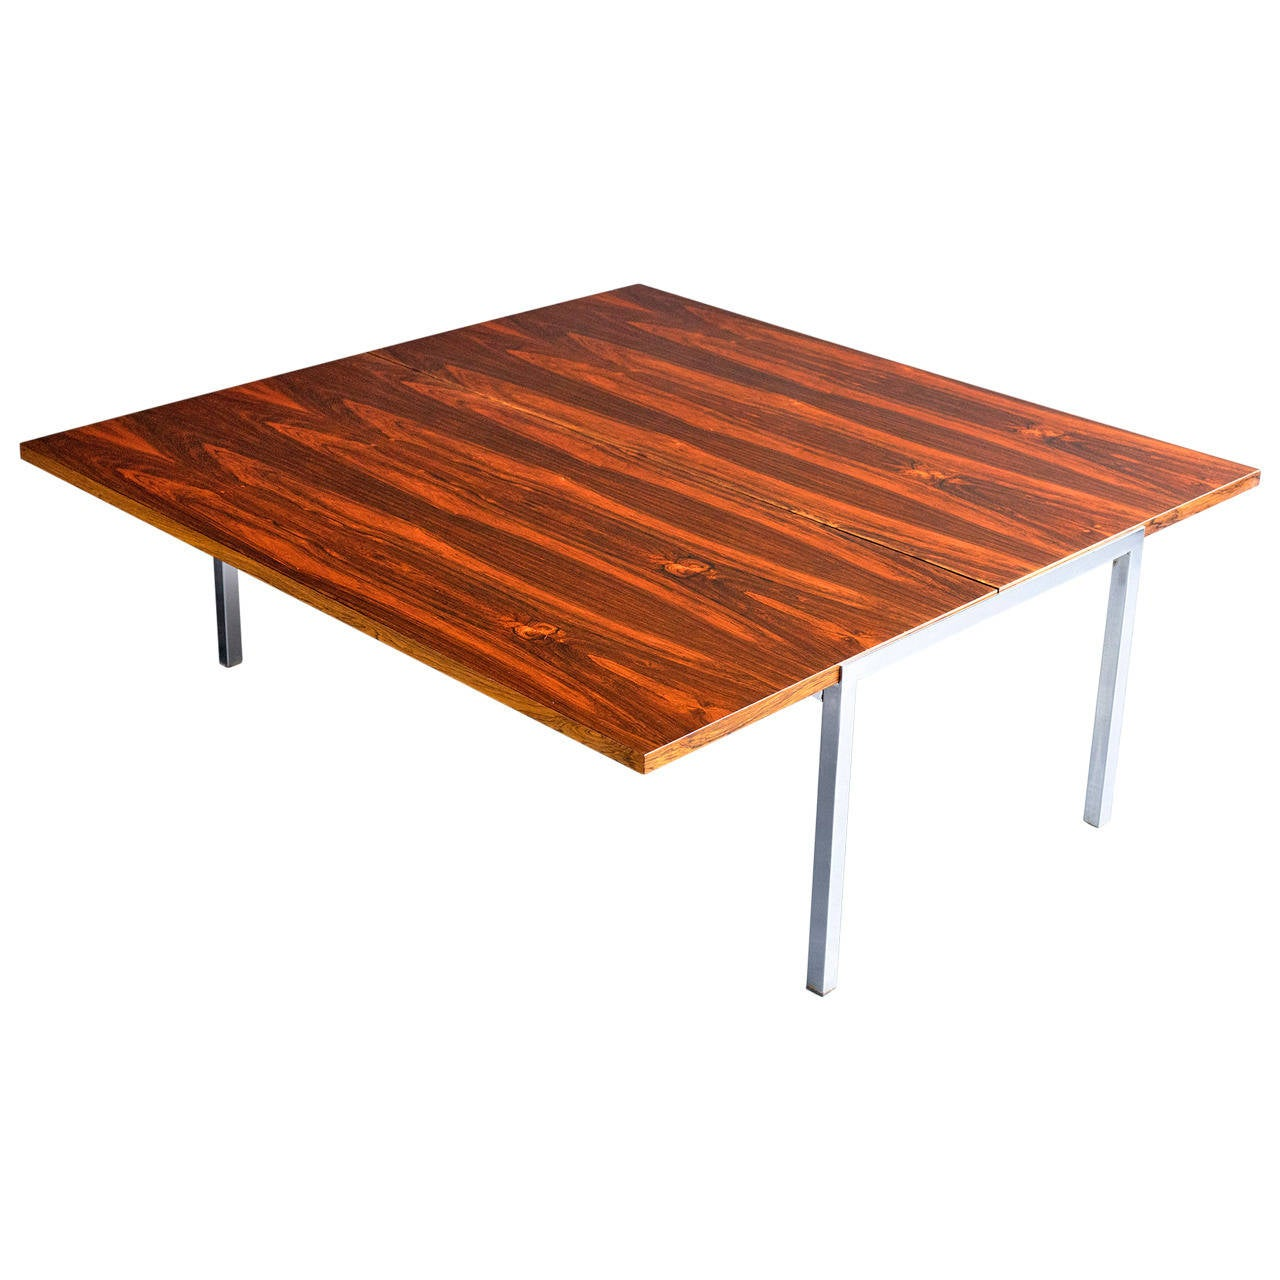 Convertible Coffee Table By Wilhelm Renz For Sale At 1stdibs